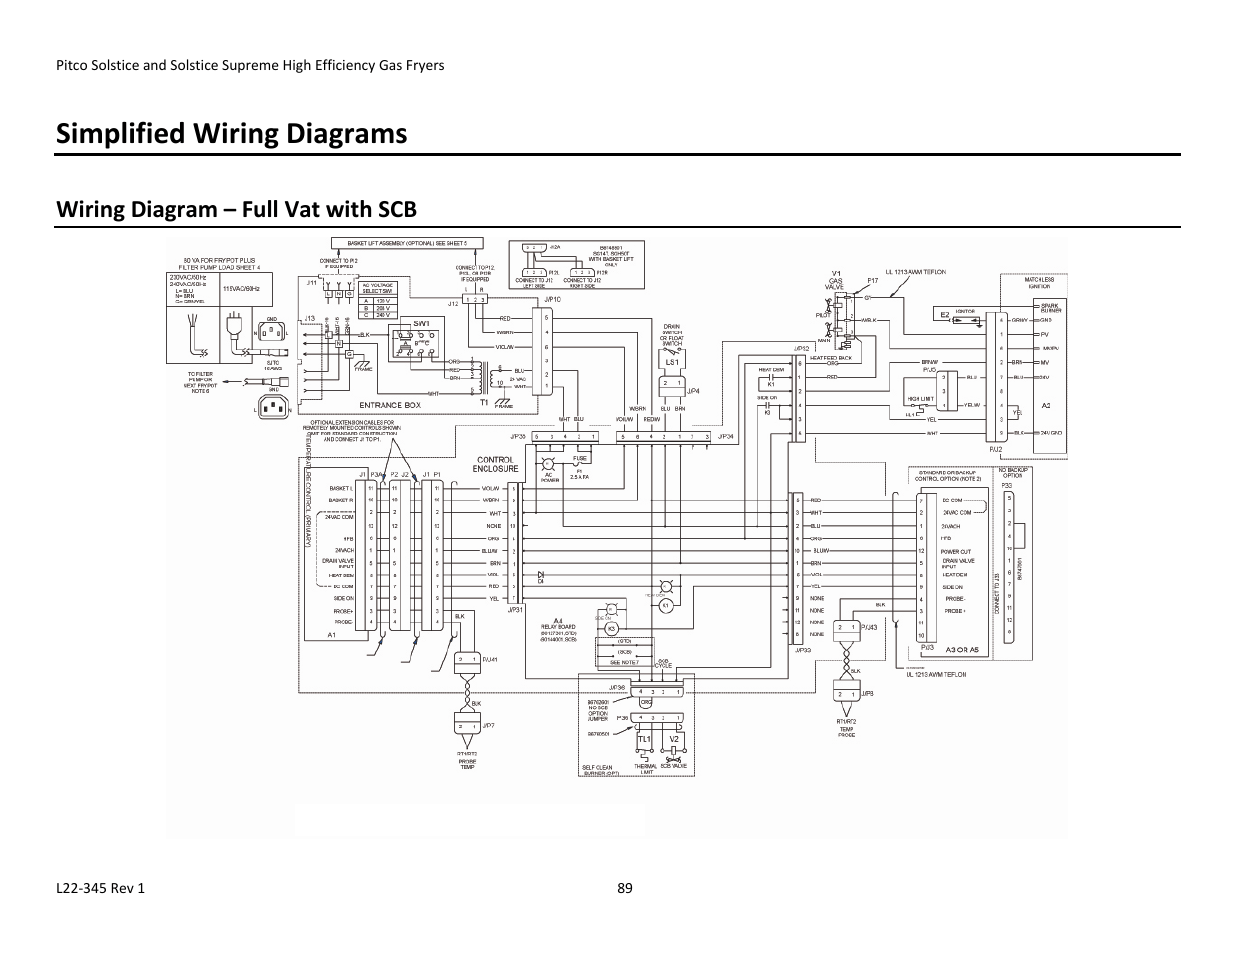 Simplified Wiring Diagrams Wiring Diagram Full Vat With Scb